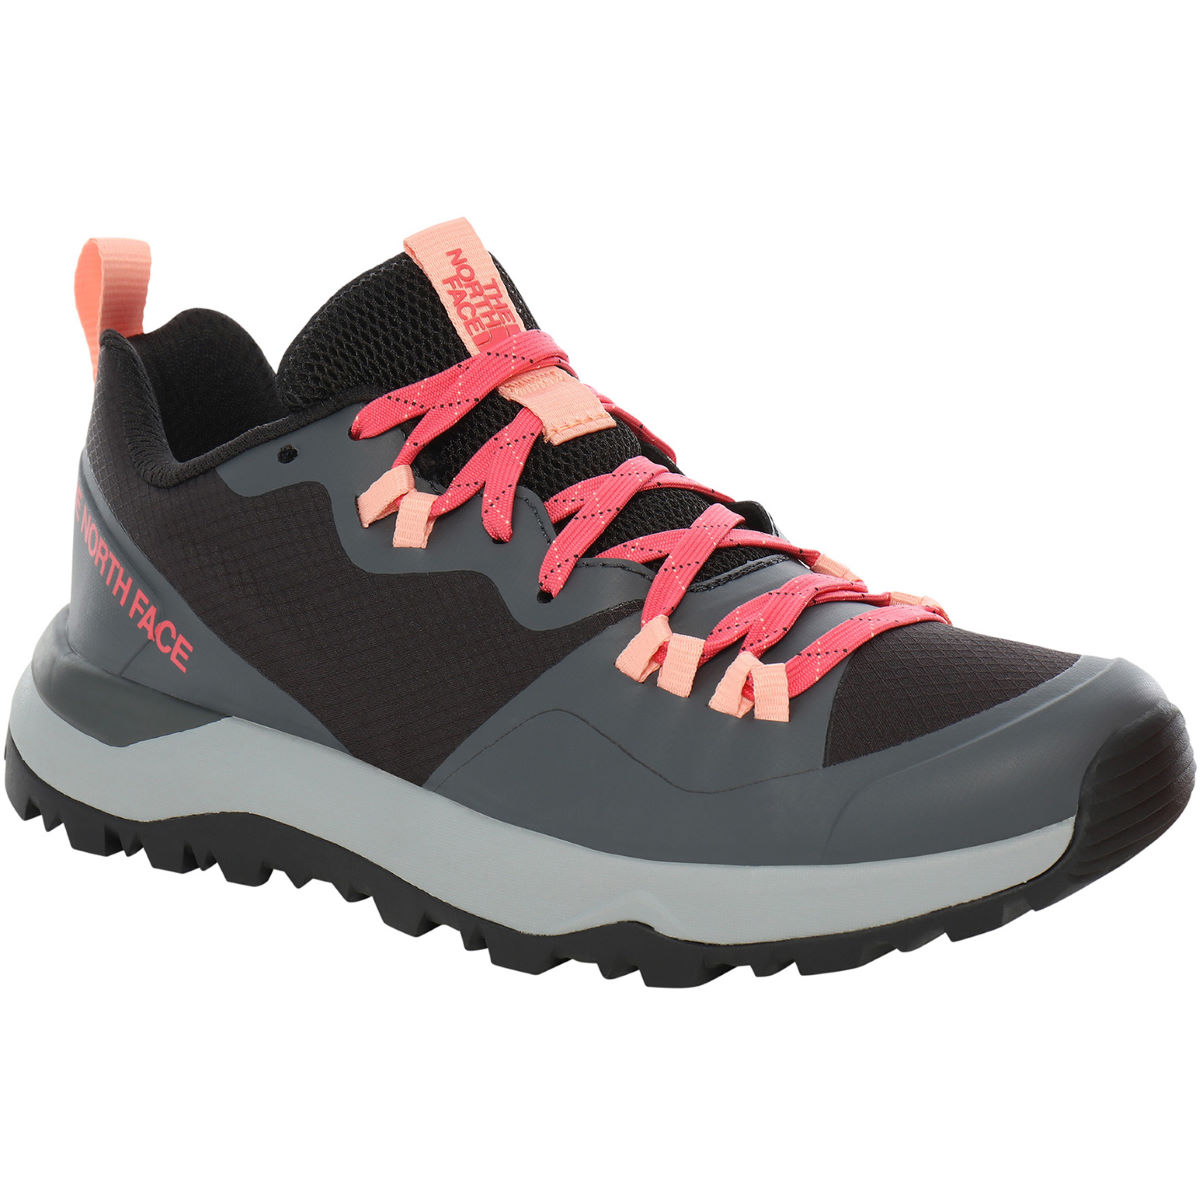 The North Face The North Face Women's Activist Lite Shoes   Trail Shoes